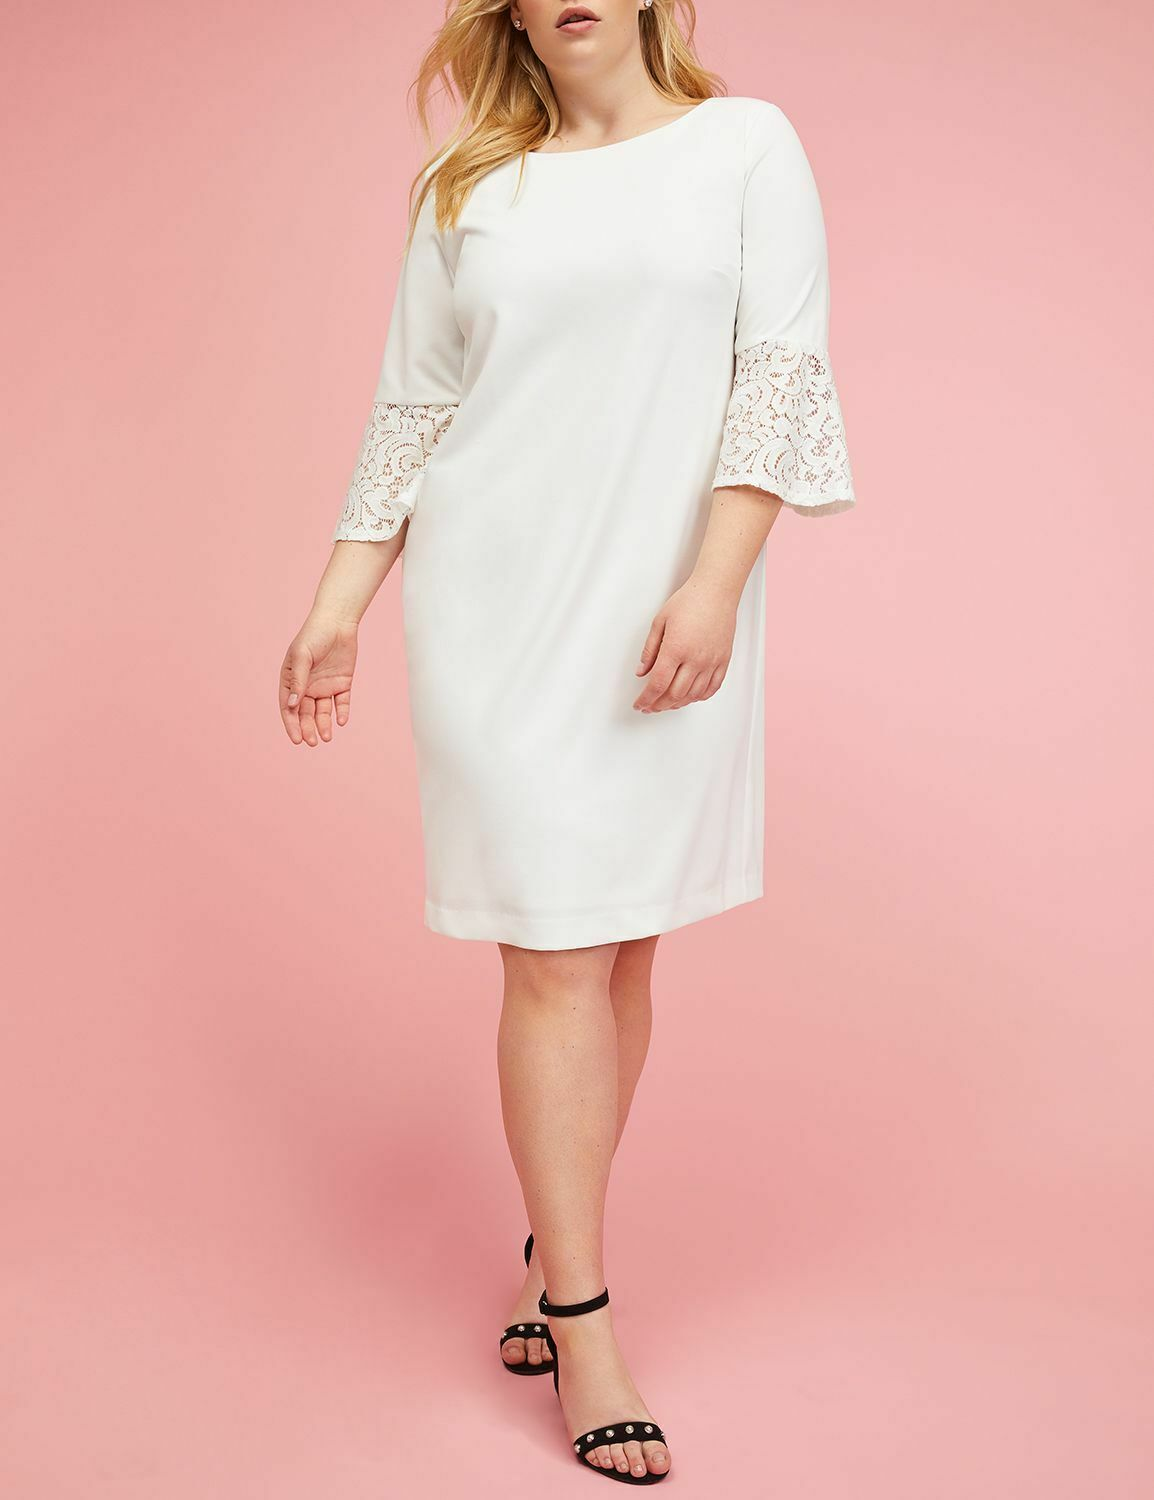 NEW LANE BRYANT IVORY LACE BELL-SLEEVE SHEATH DRESS SZ 16